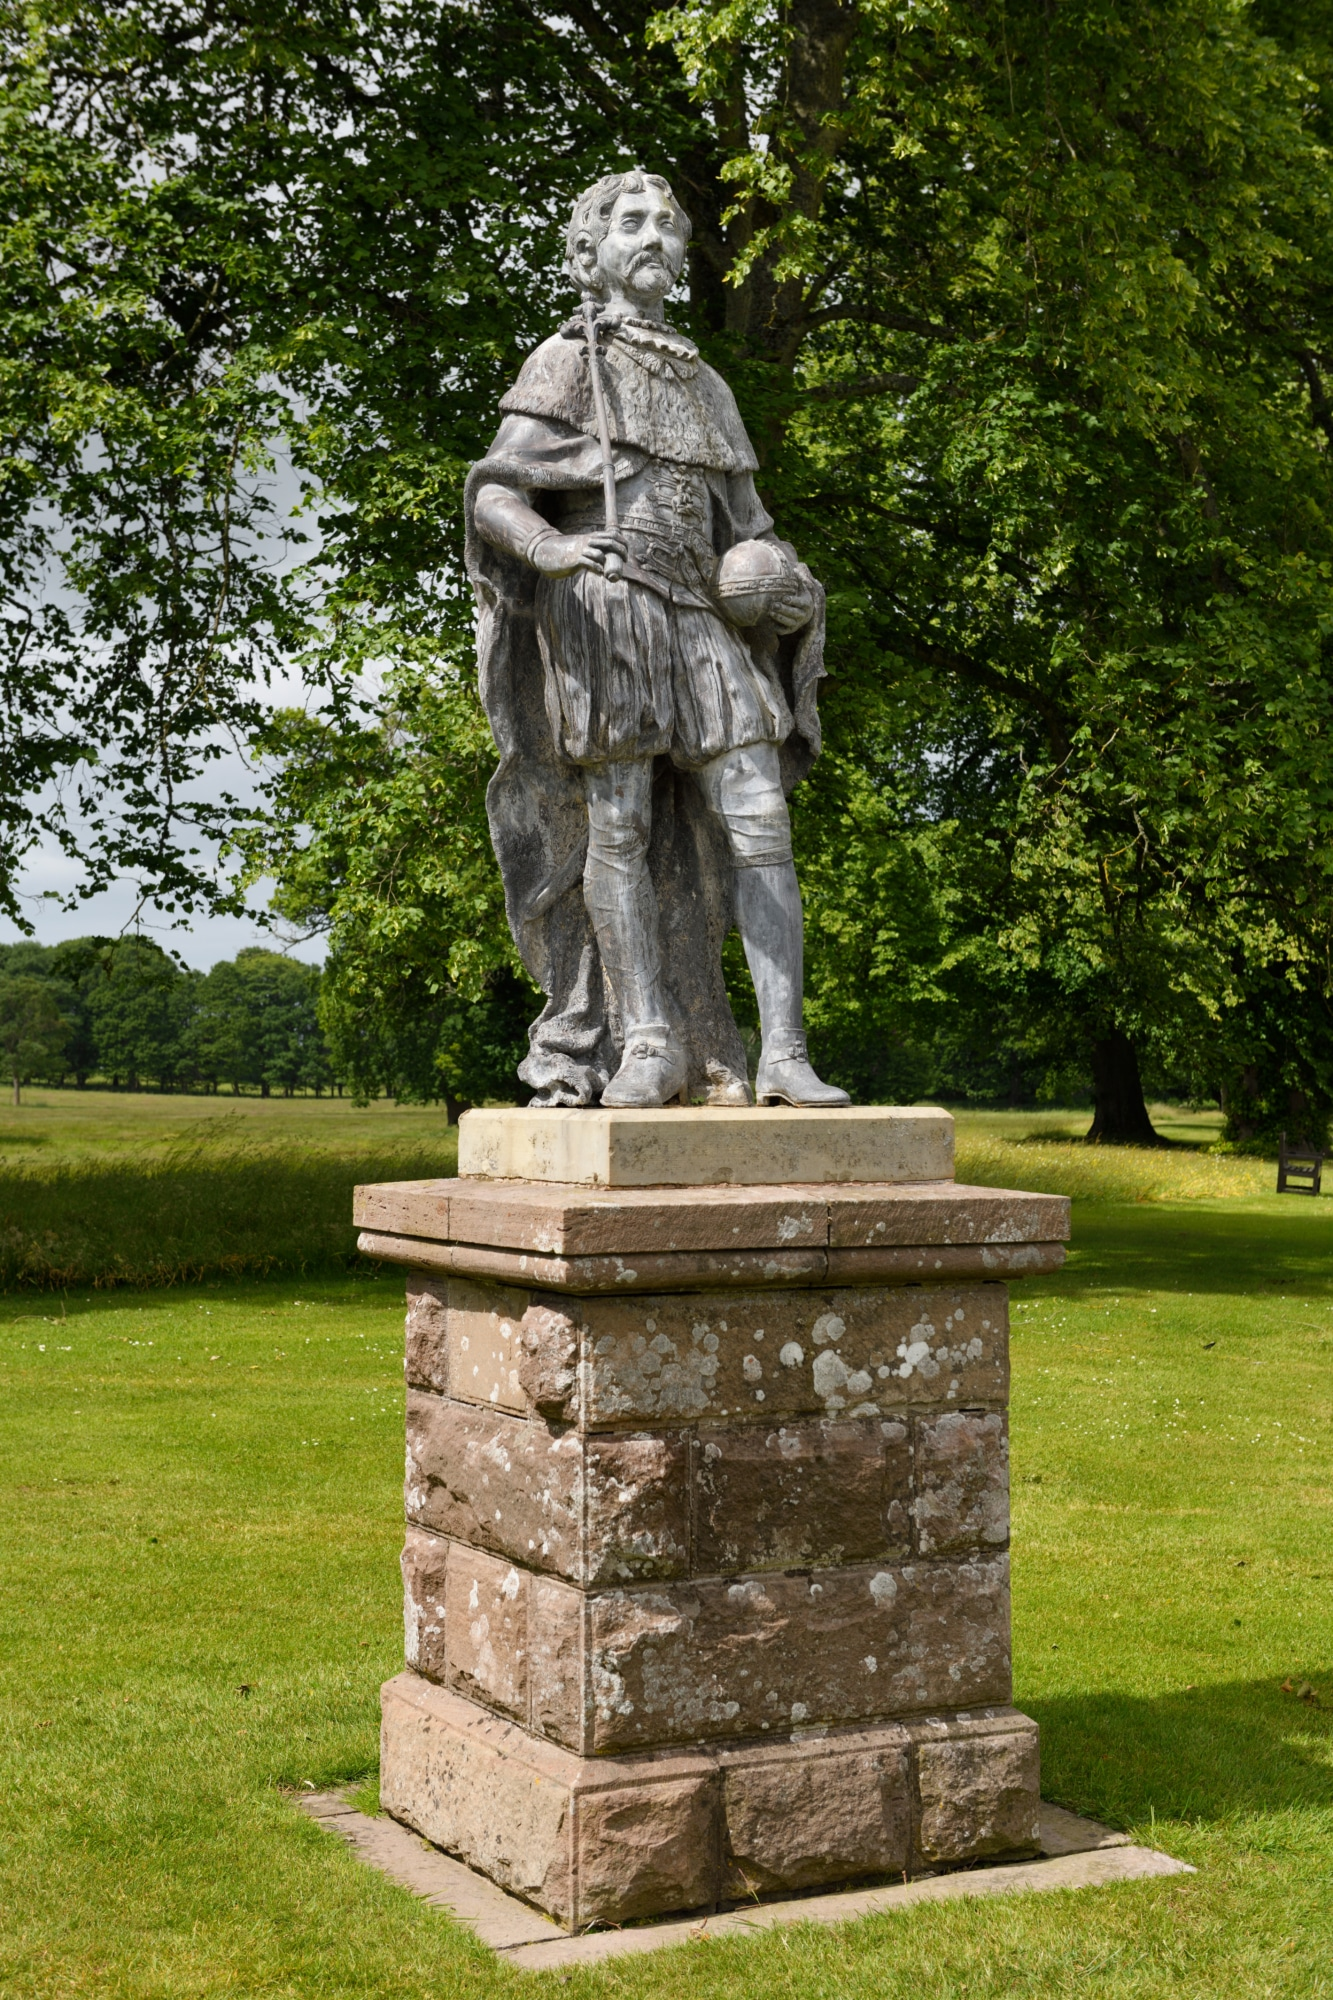 Life size lead statue of King James VI of Scotland and King James I of England with orb and sceptre at Glamis Castle Scotland UK